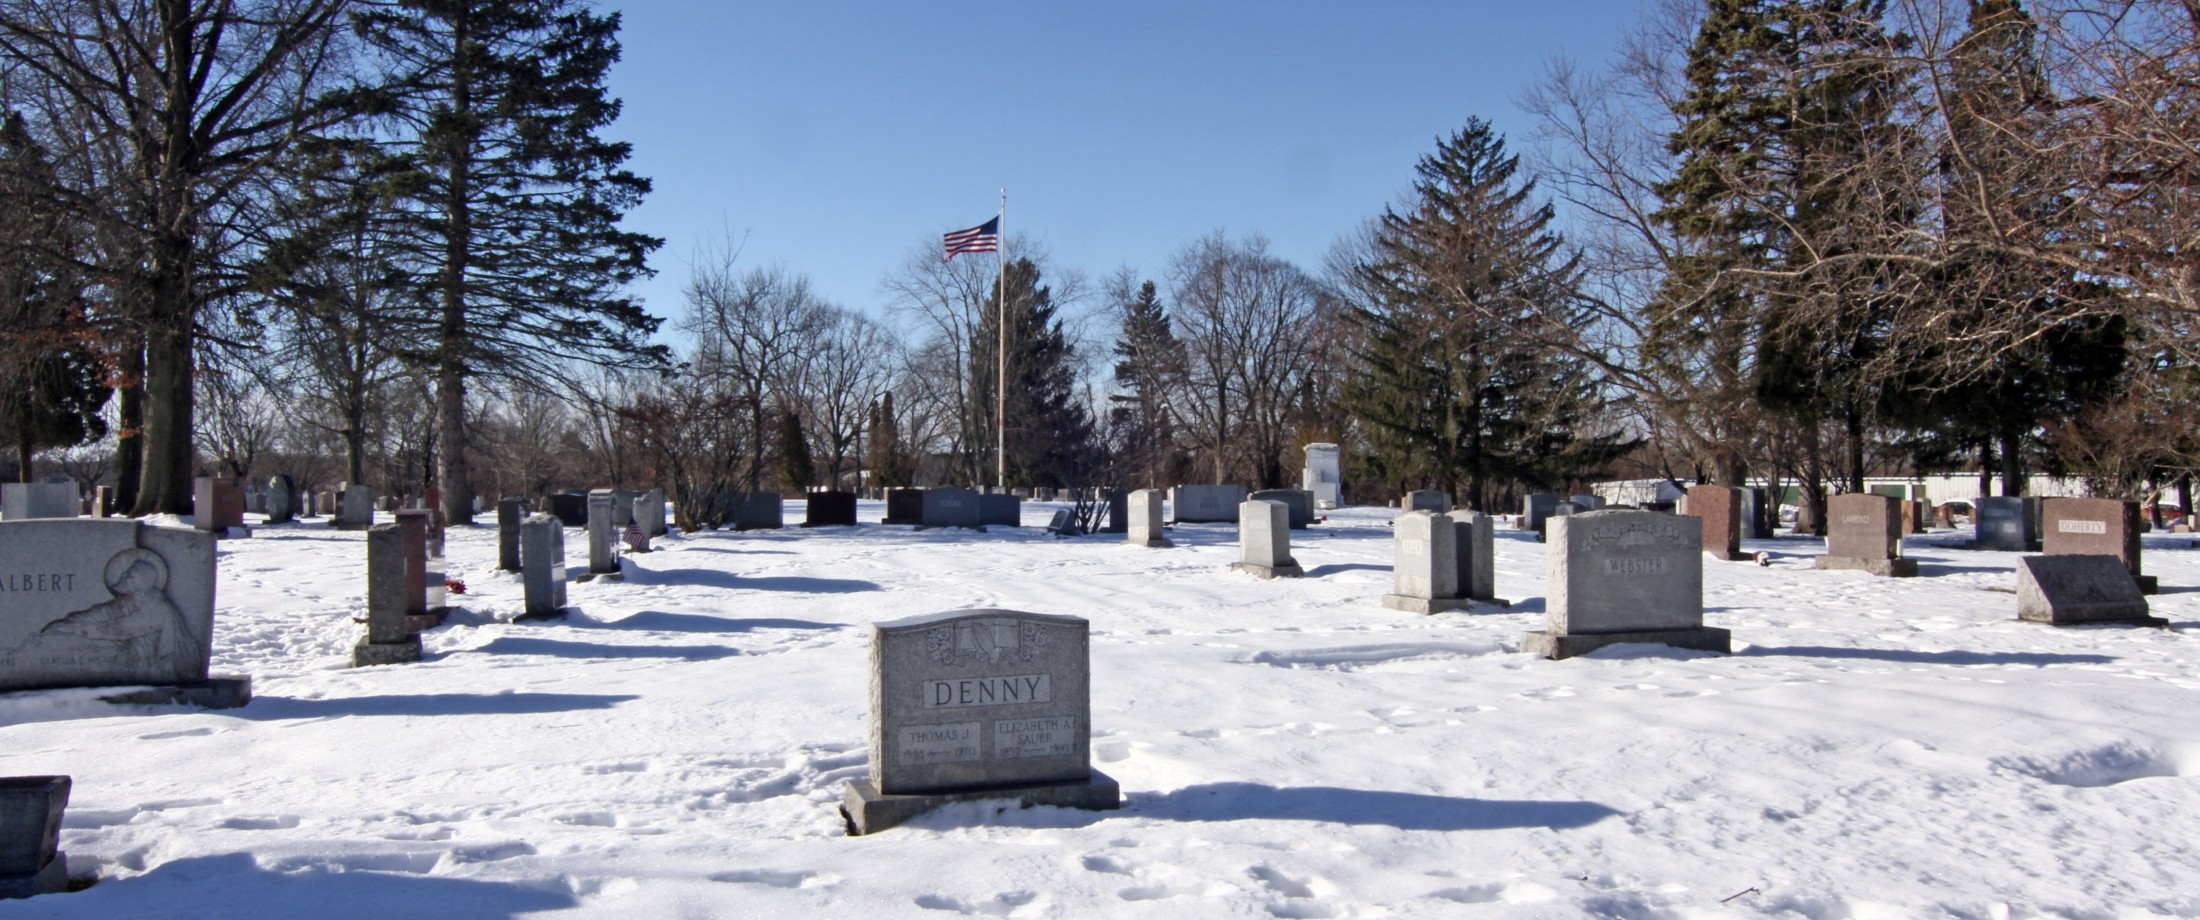 Graceland Cemetery with Flag in the Winter